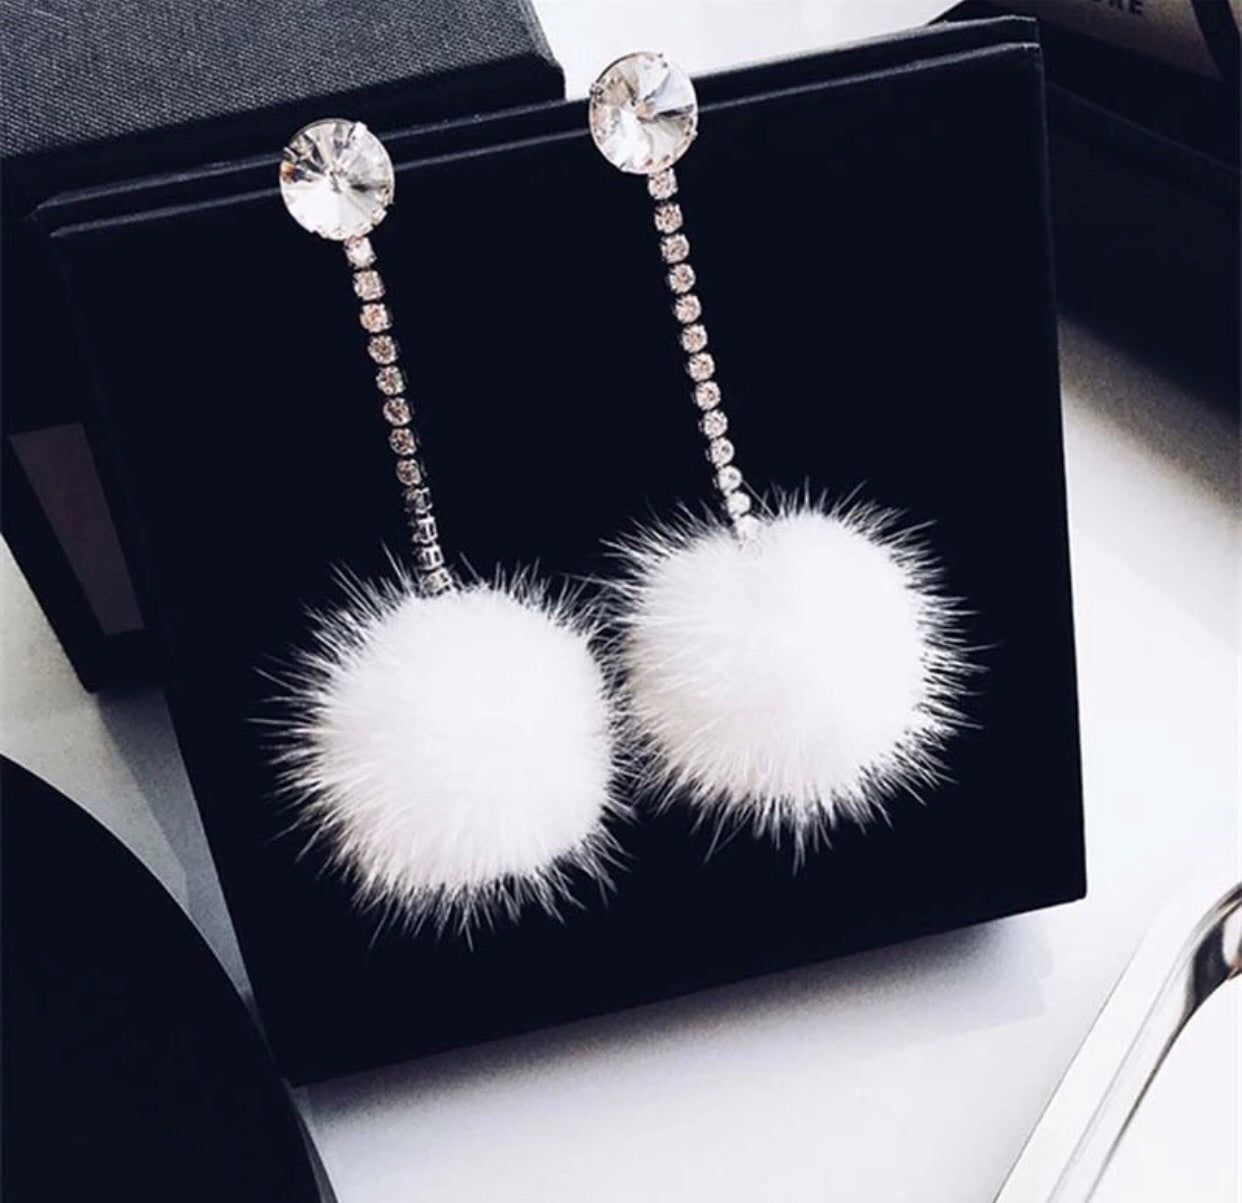 Crystal stud earrings with white pom poms